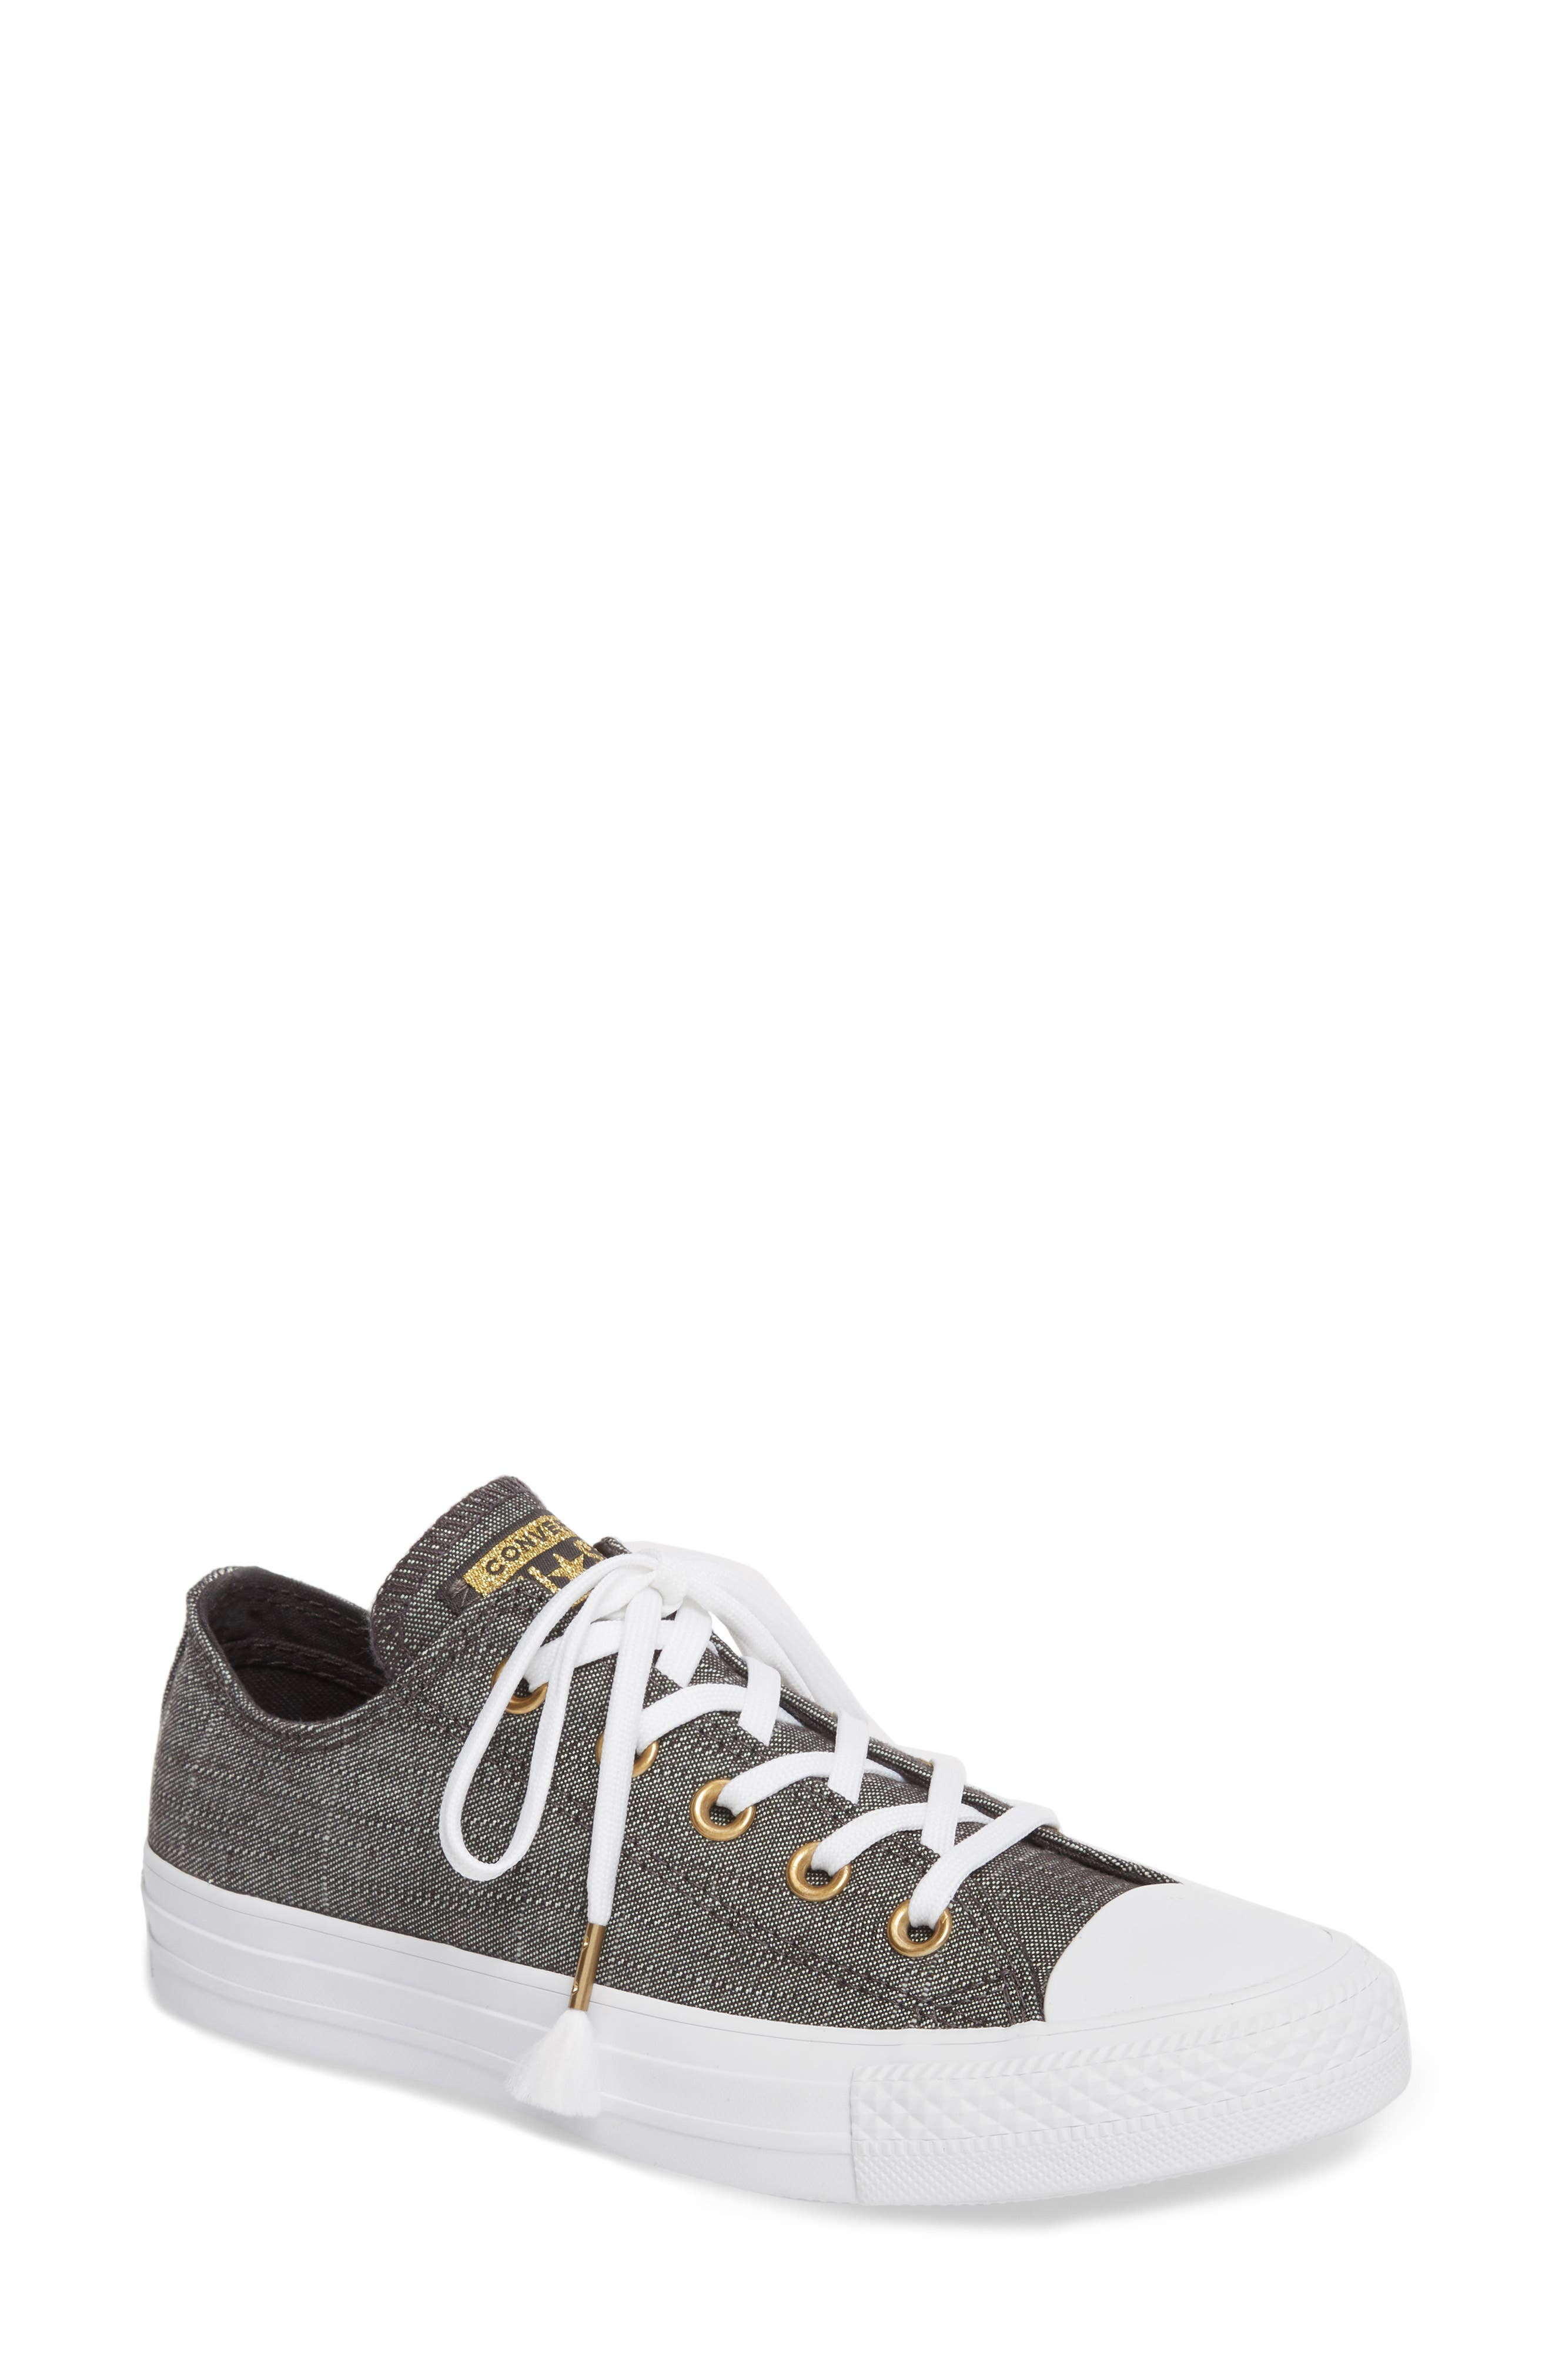 Chuck Taylor<sup>®</sup> All Star<sup>®</sup> Washed Linen Low Top Sneaker,                             Main thumbnail 1, color,                             006